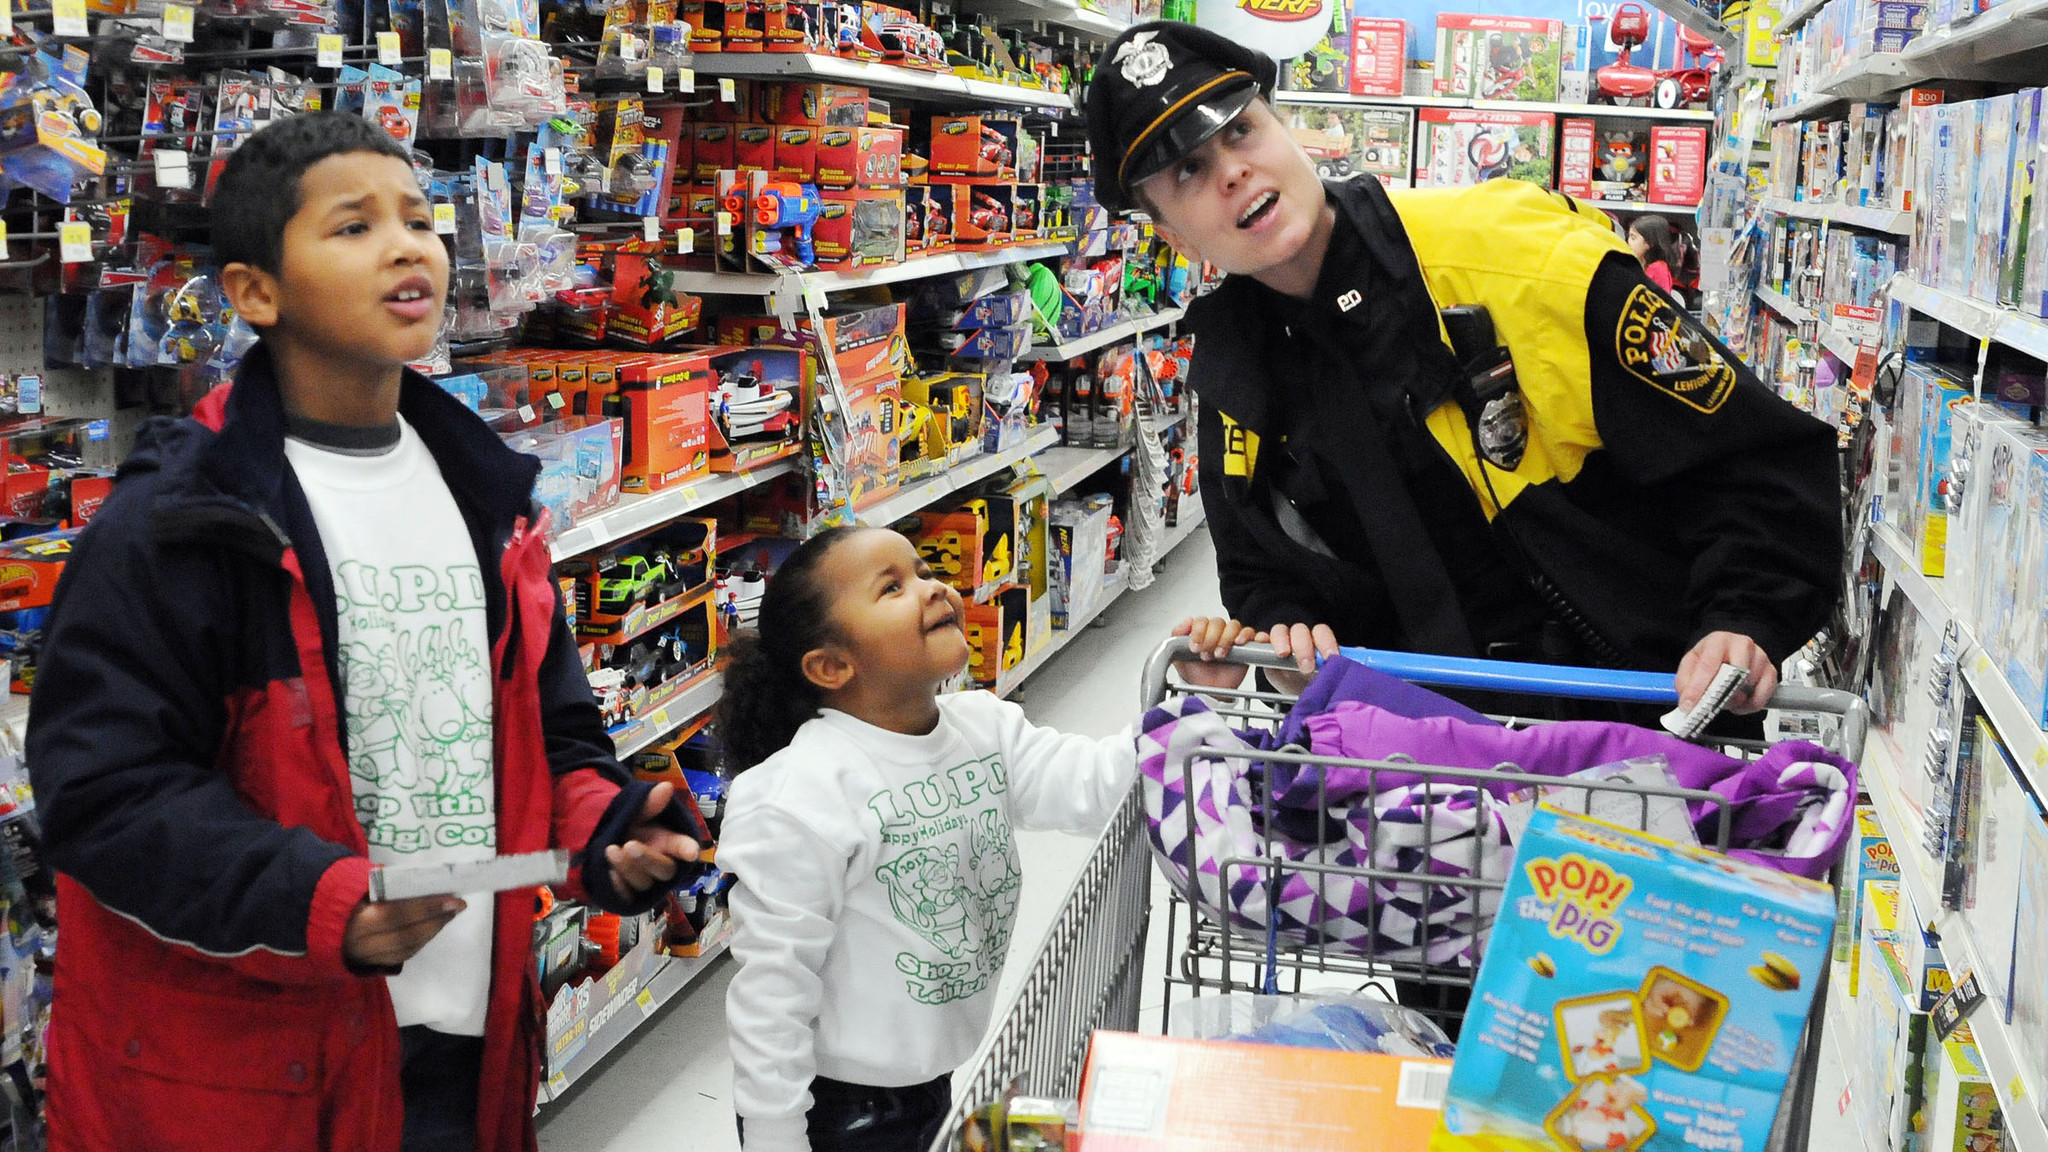 Lehigh University police take kids Christmas shopping at Walmart - The Morning Call